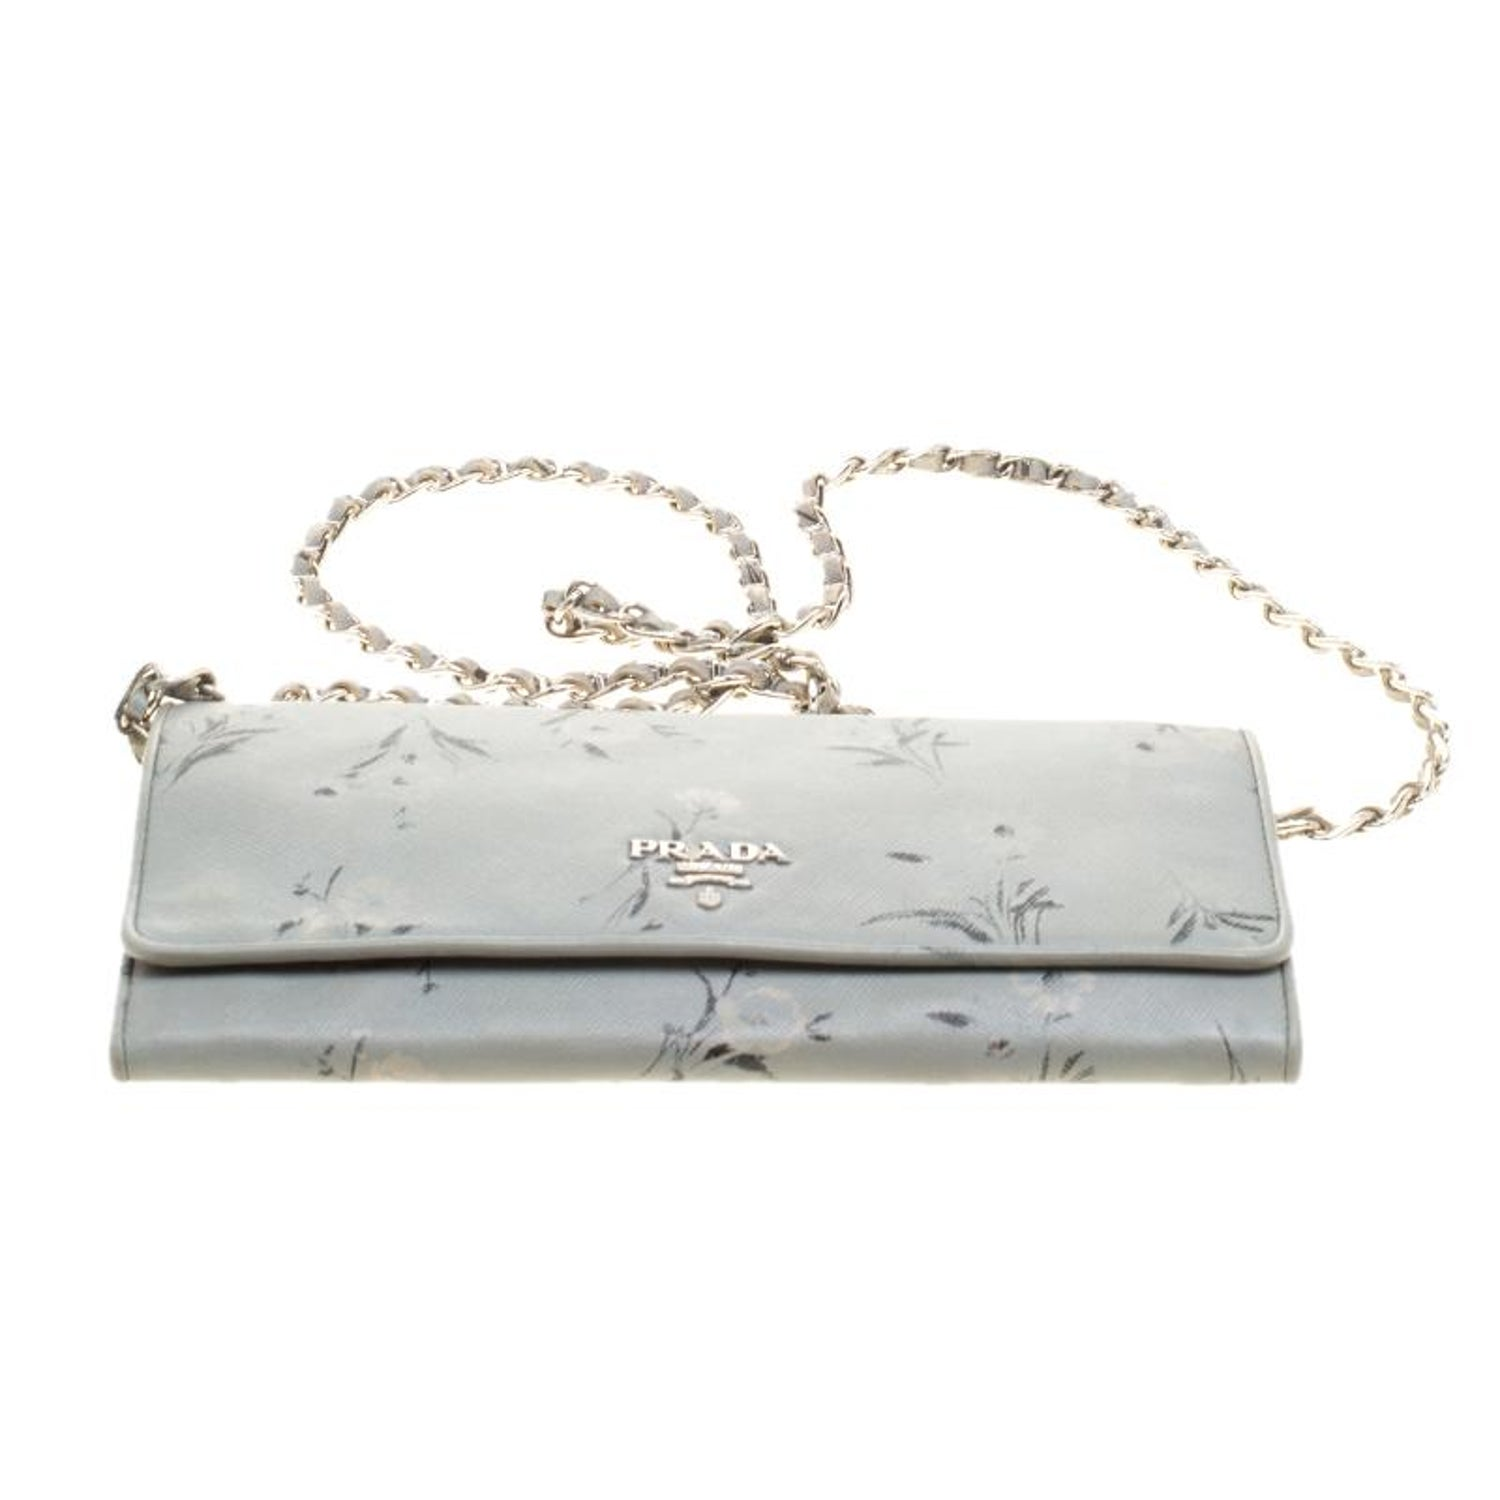 aa869cfe404e Prada Grey Floral Print Saffiano Leather Wallet on Chain For Sale at 1stdibs